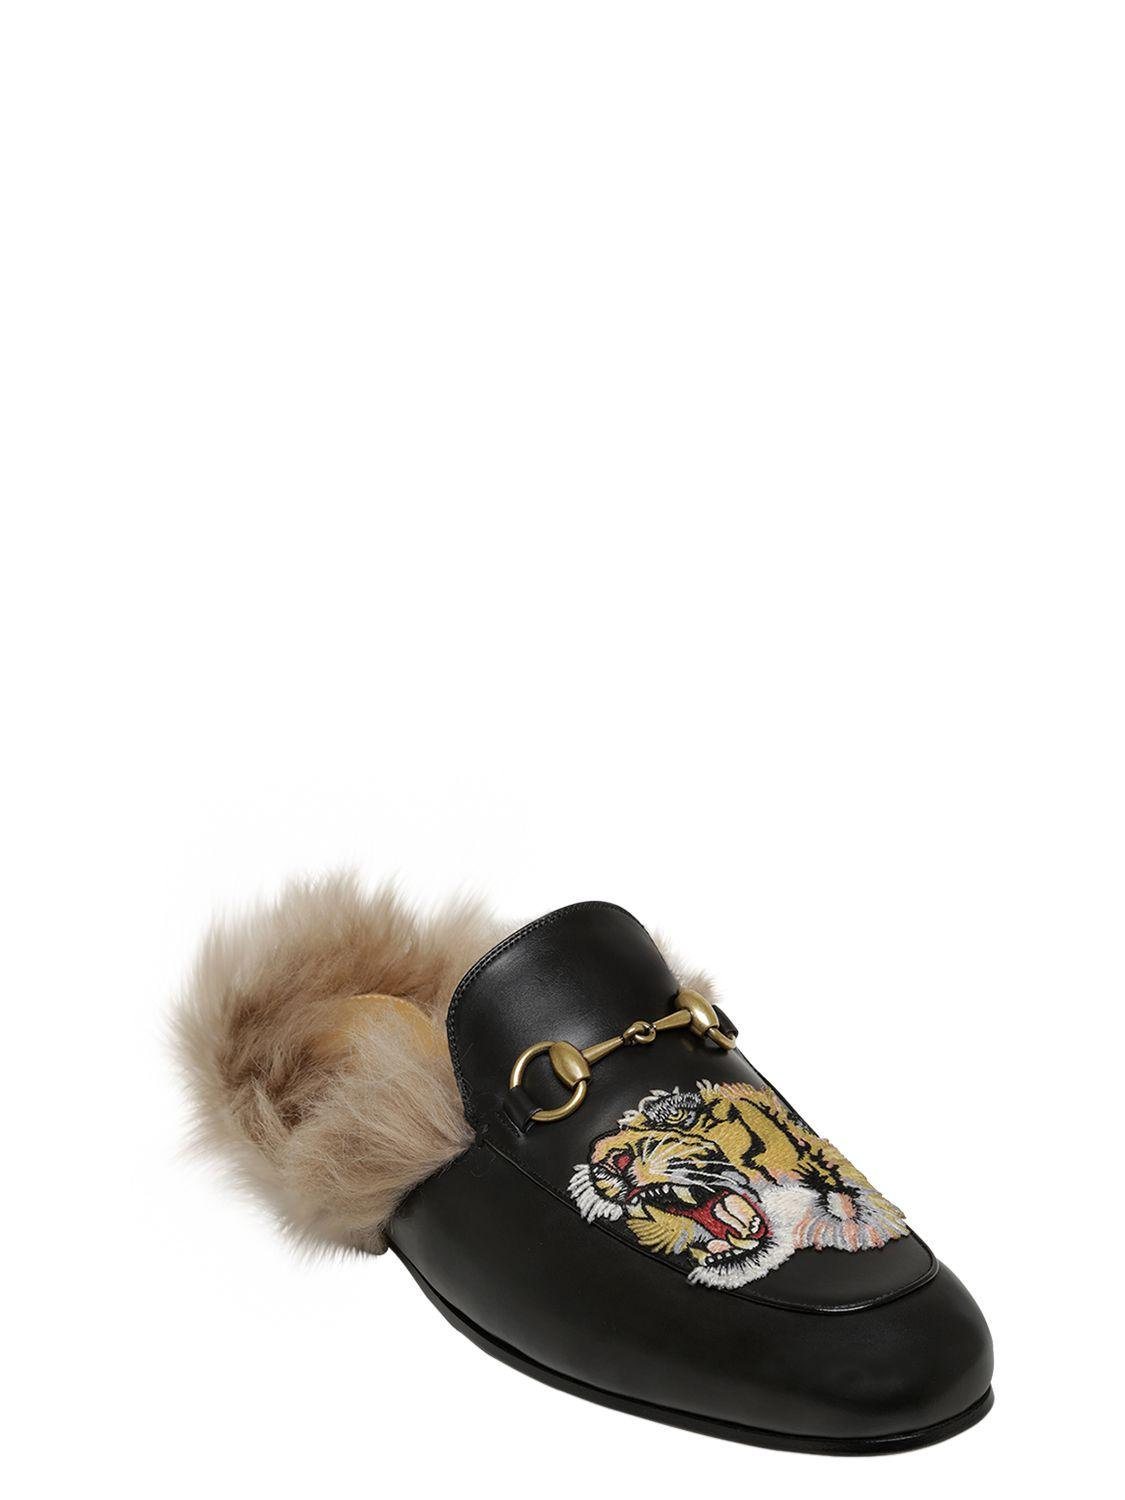 c952a0de6ba Lyst - Gucci Tiger Embroidered Leather Mules in Black